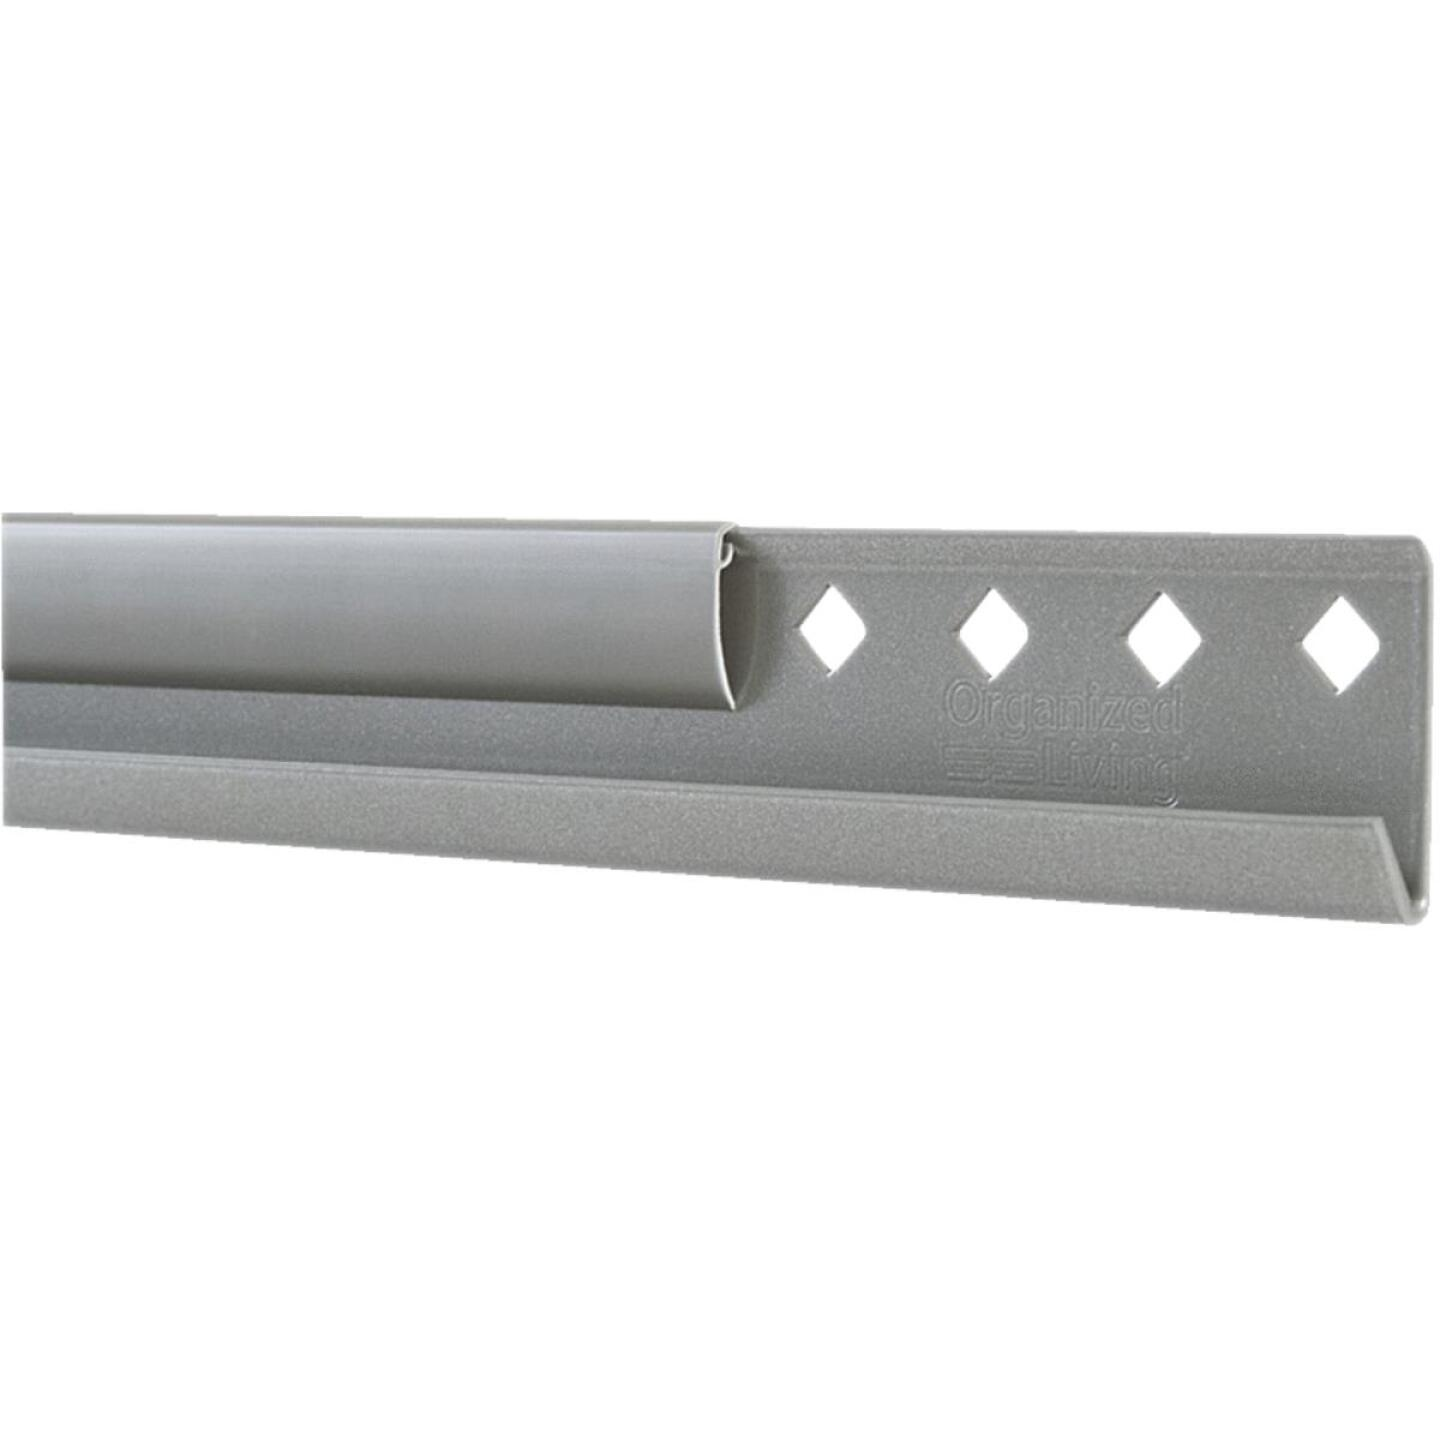 FreedomRail 24 In. Nickel Horizontal Hanging Rail with Cover Image 1